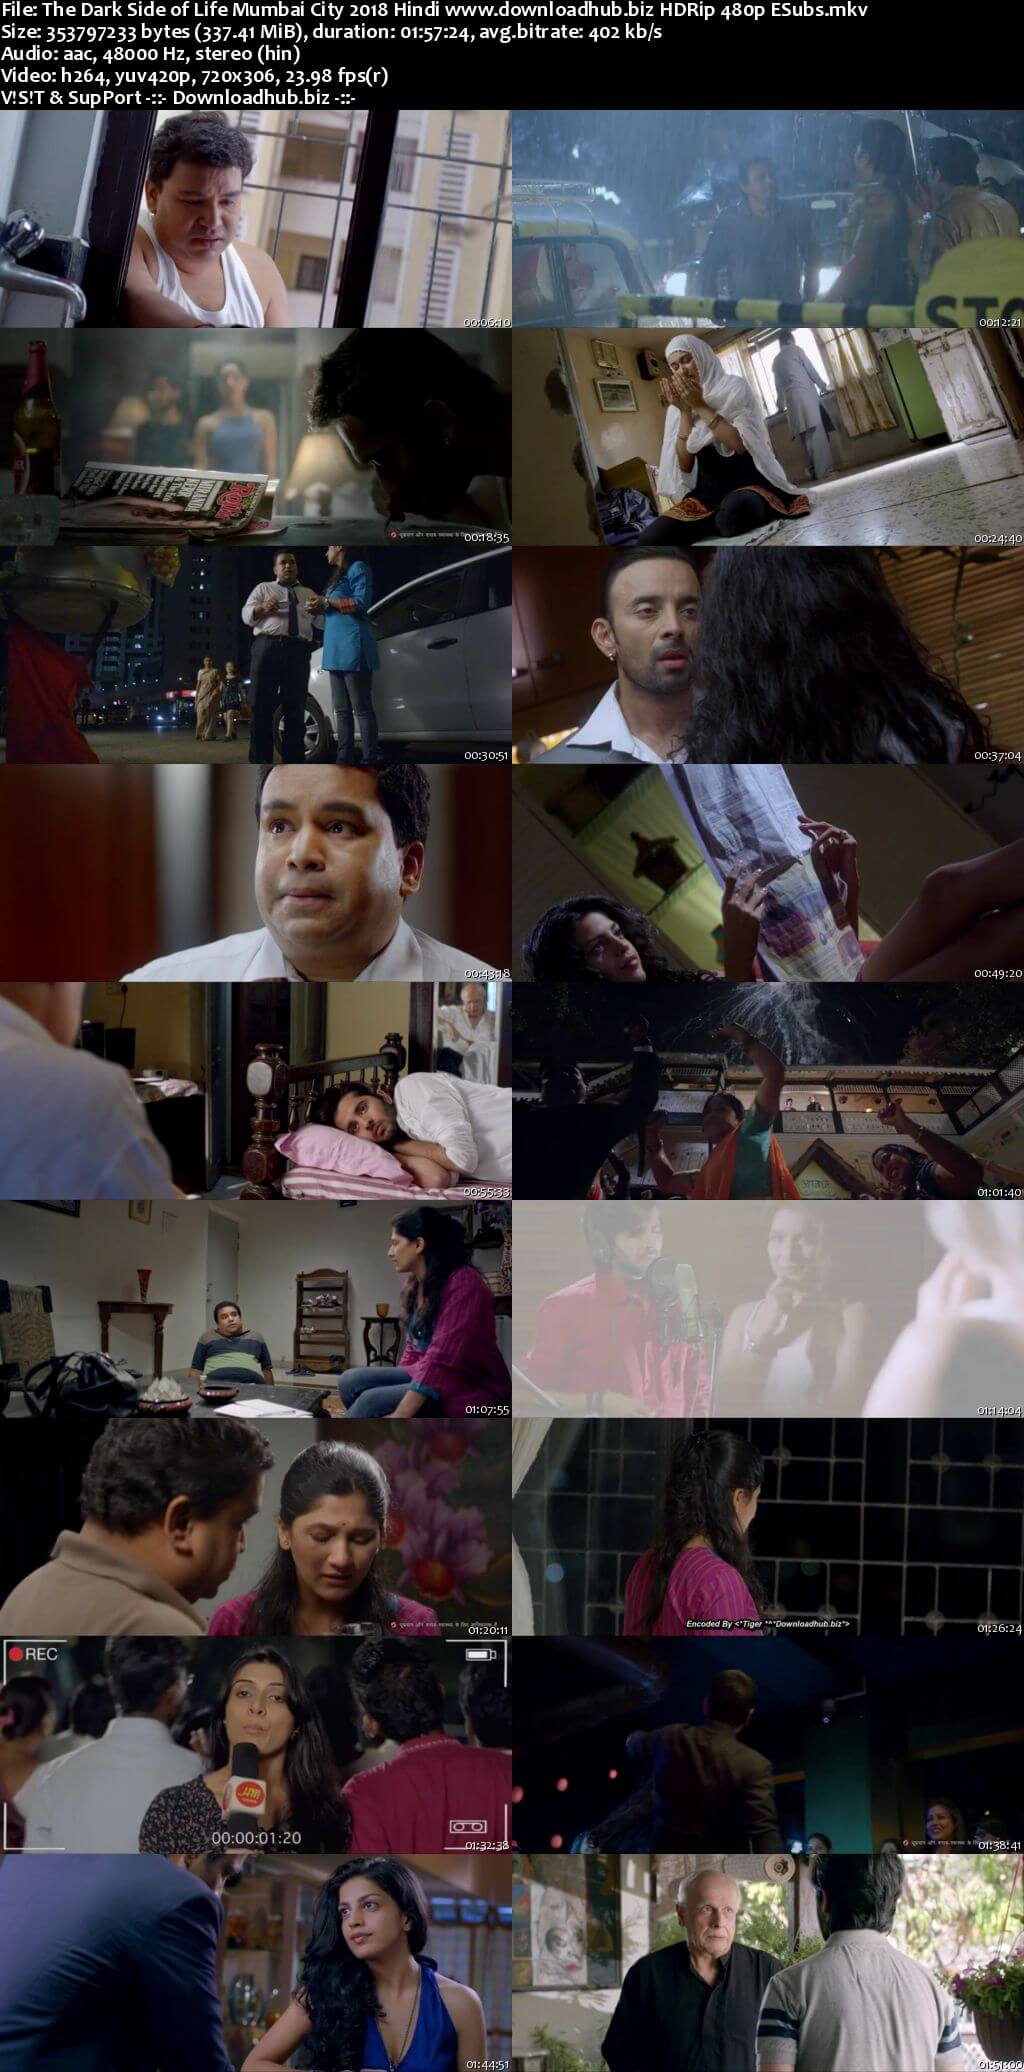 The Dark Side of Life Mumbai City 2018 Hindi 300MB HDRip 480p ESubs